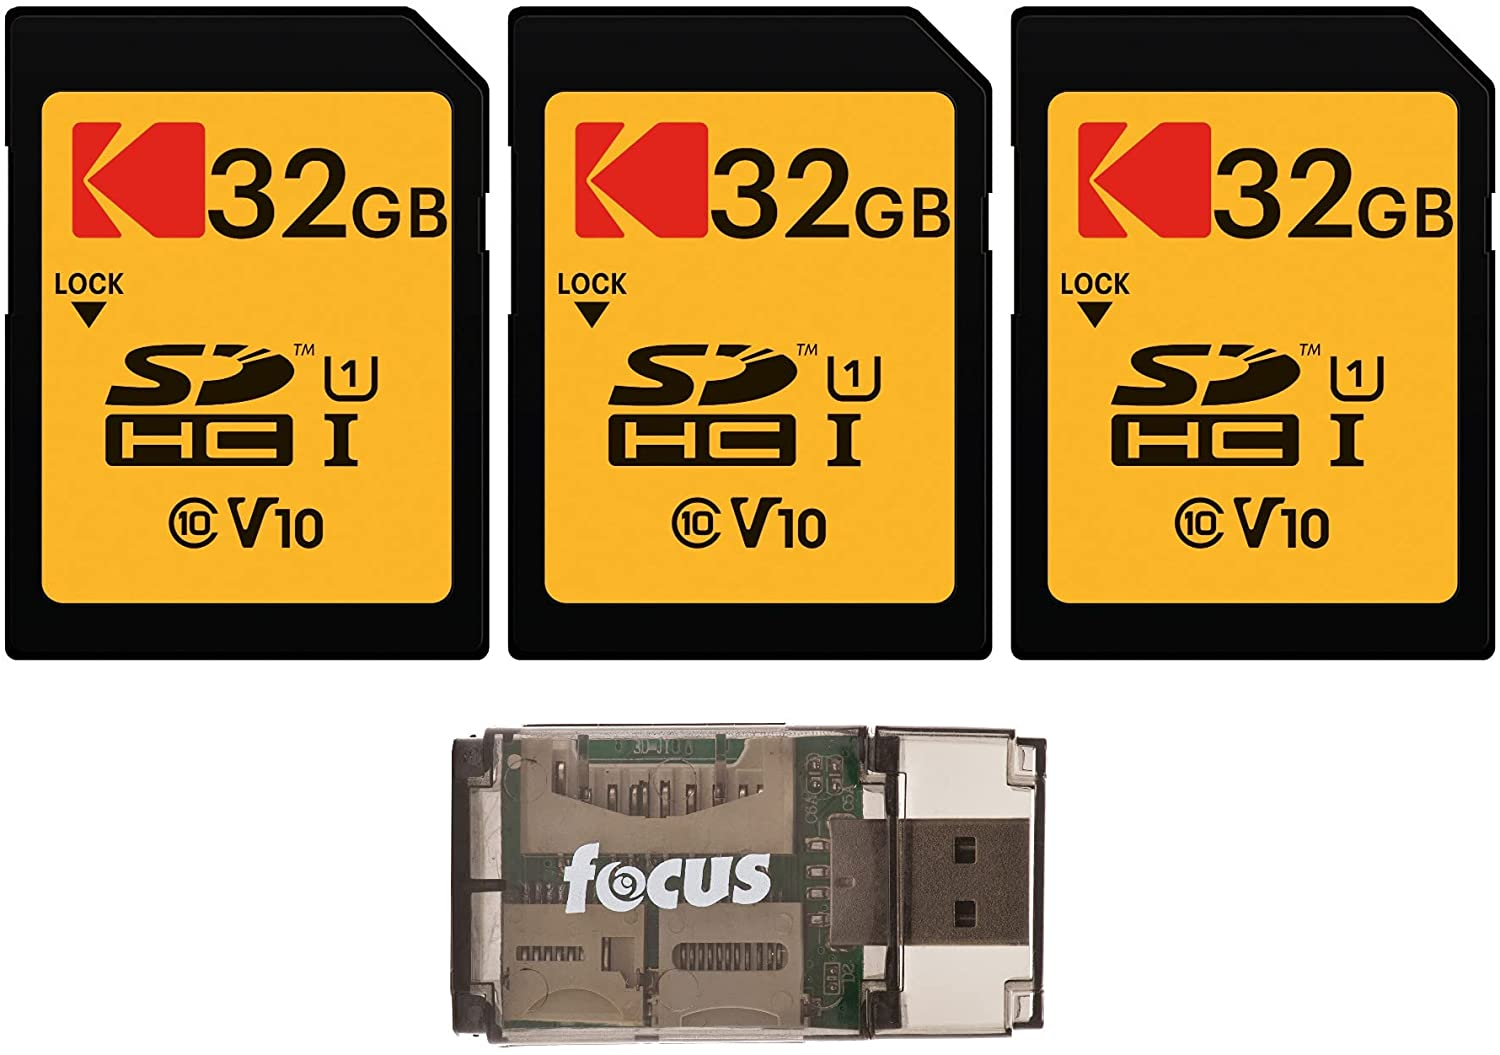 Kodak 32GB Class 10 UHS-I U1 SDHC Memory Card (3-Pack) with Focus All-in-One USB Card Reader Bundle (4 Items)